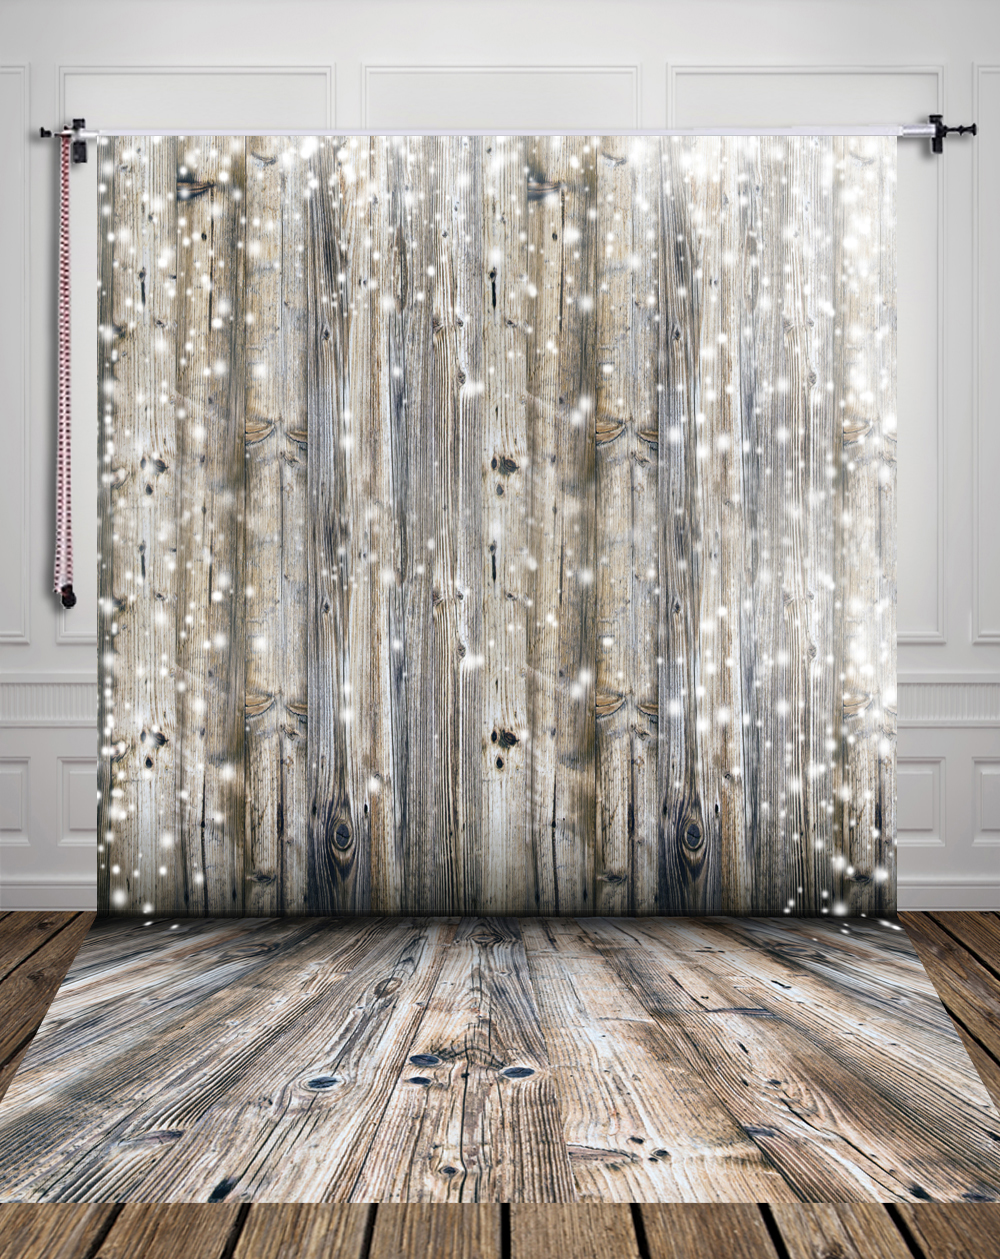 Studio Photography Background Christmas Wood Backdrop Studio Newborn Backdrops Snow Sparkle Backdrop D-2389 all sizes wood floor and white bricks photography backdrops background photo studio wallpaper decoration backdrop d 9638